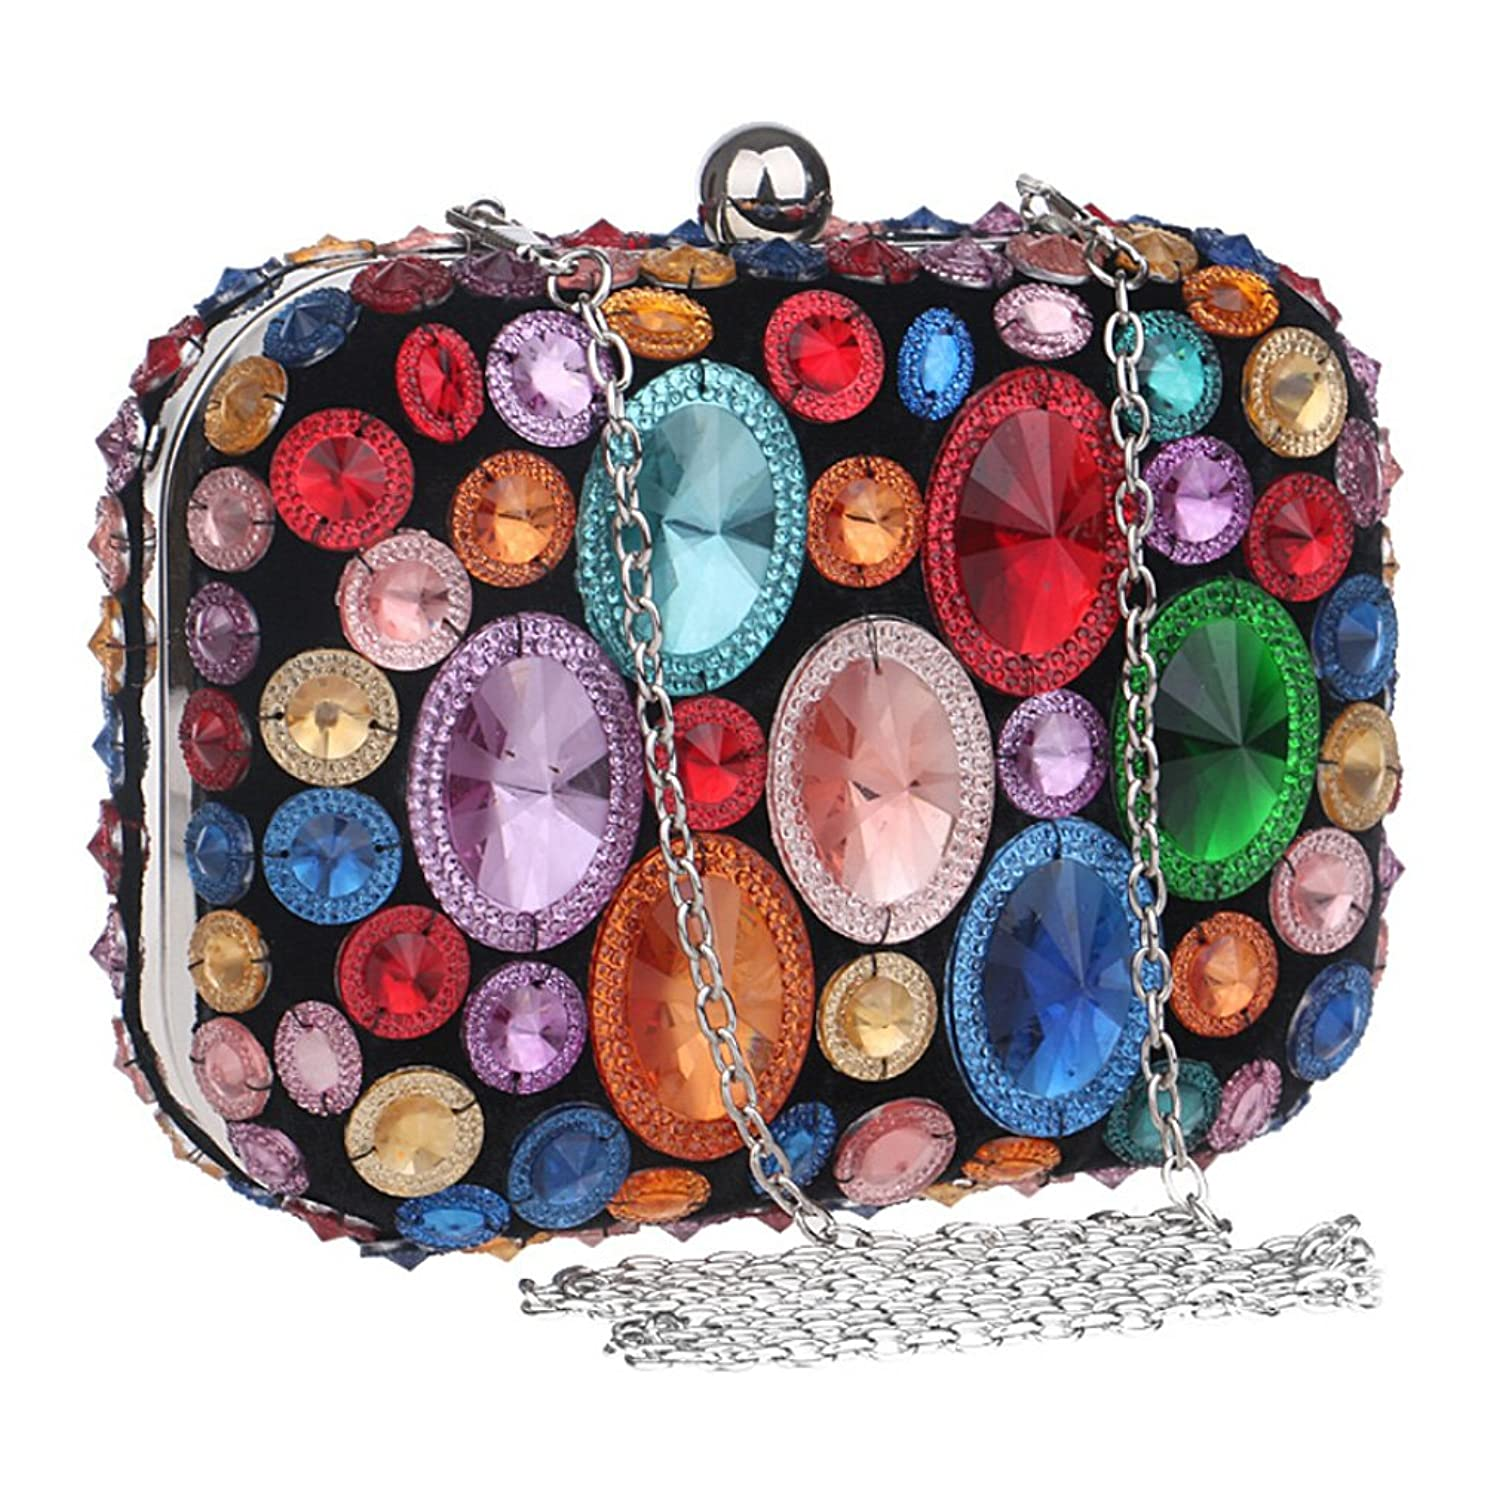 Abless Womens Glamour Elegant Evening Clutch Fashion Purse Chain Handbag -SK1113